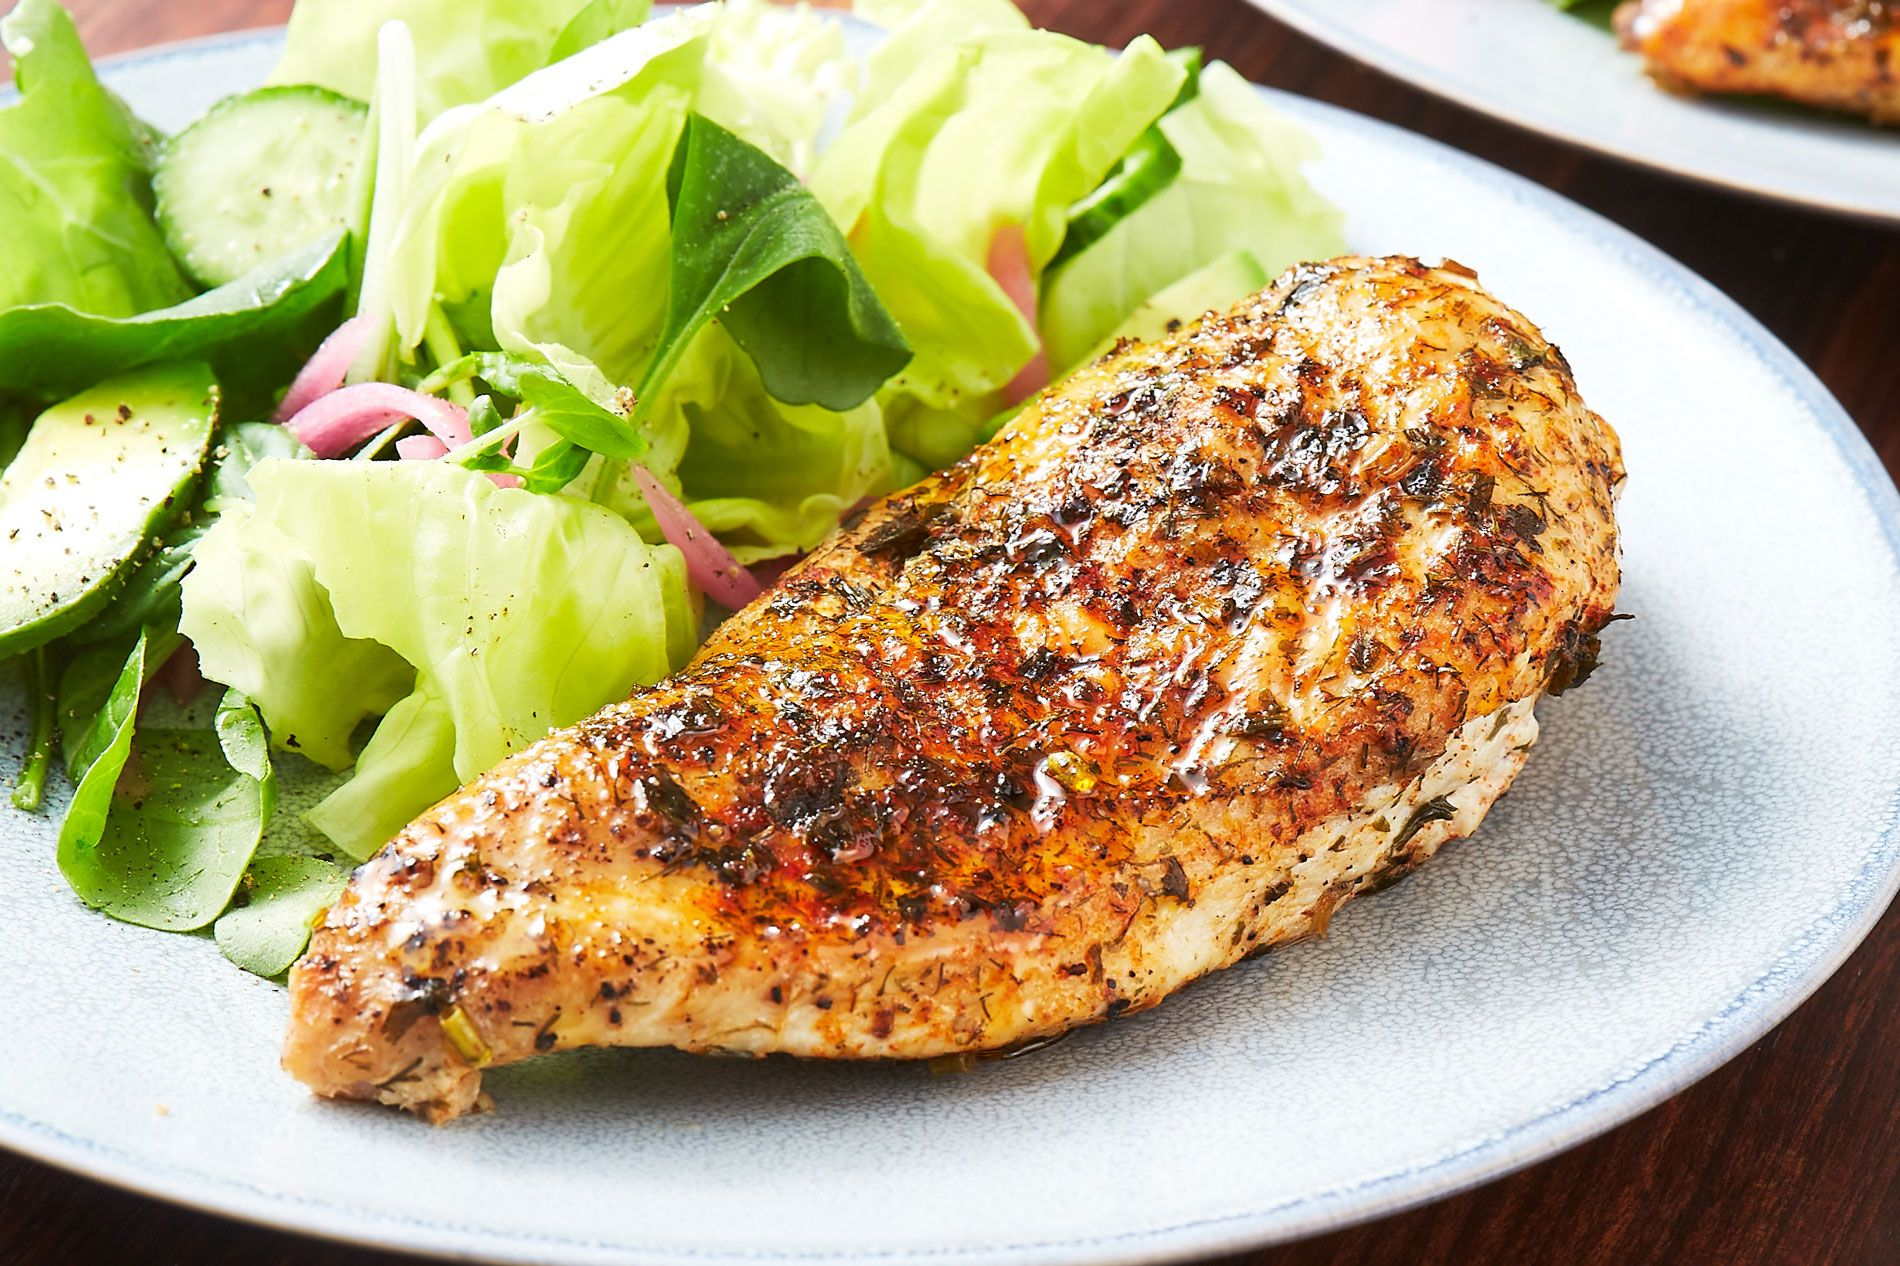 Best Instant Pot Chicken Breasts Recipe How To Make Instant Pot Chicken Breasts